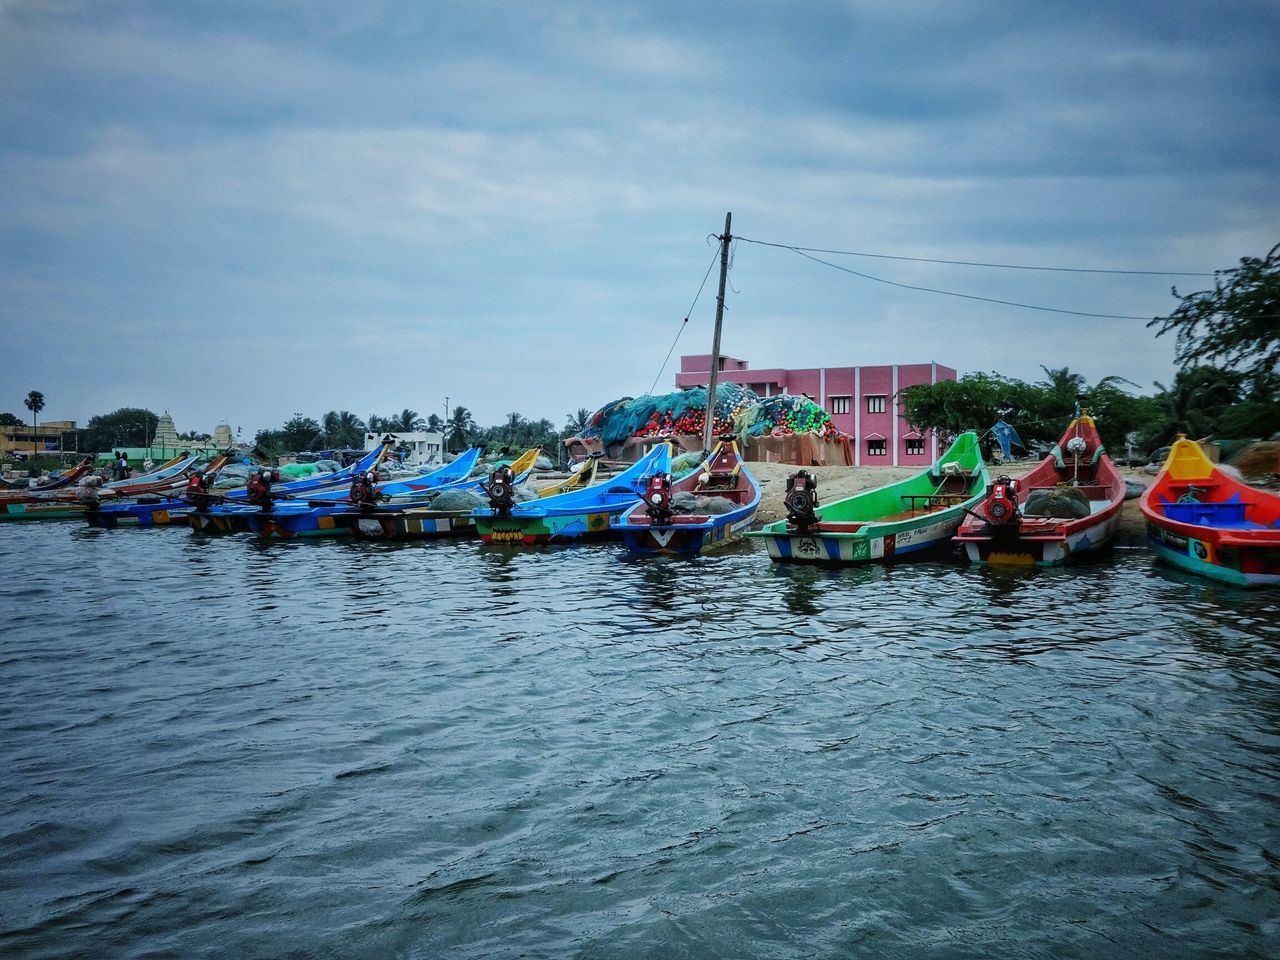 Colors of fishermen .. Boats Colorful Lake Fisherman Tamilnadu Pulicat EyeEm Best Edits Tadaa Community EyeEm Gallery Water Nature Taking Photos Check This Out EyeEm Masterclass Cool Rural Scenes Village Culture Fishing Village Fishing Boat